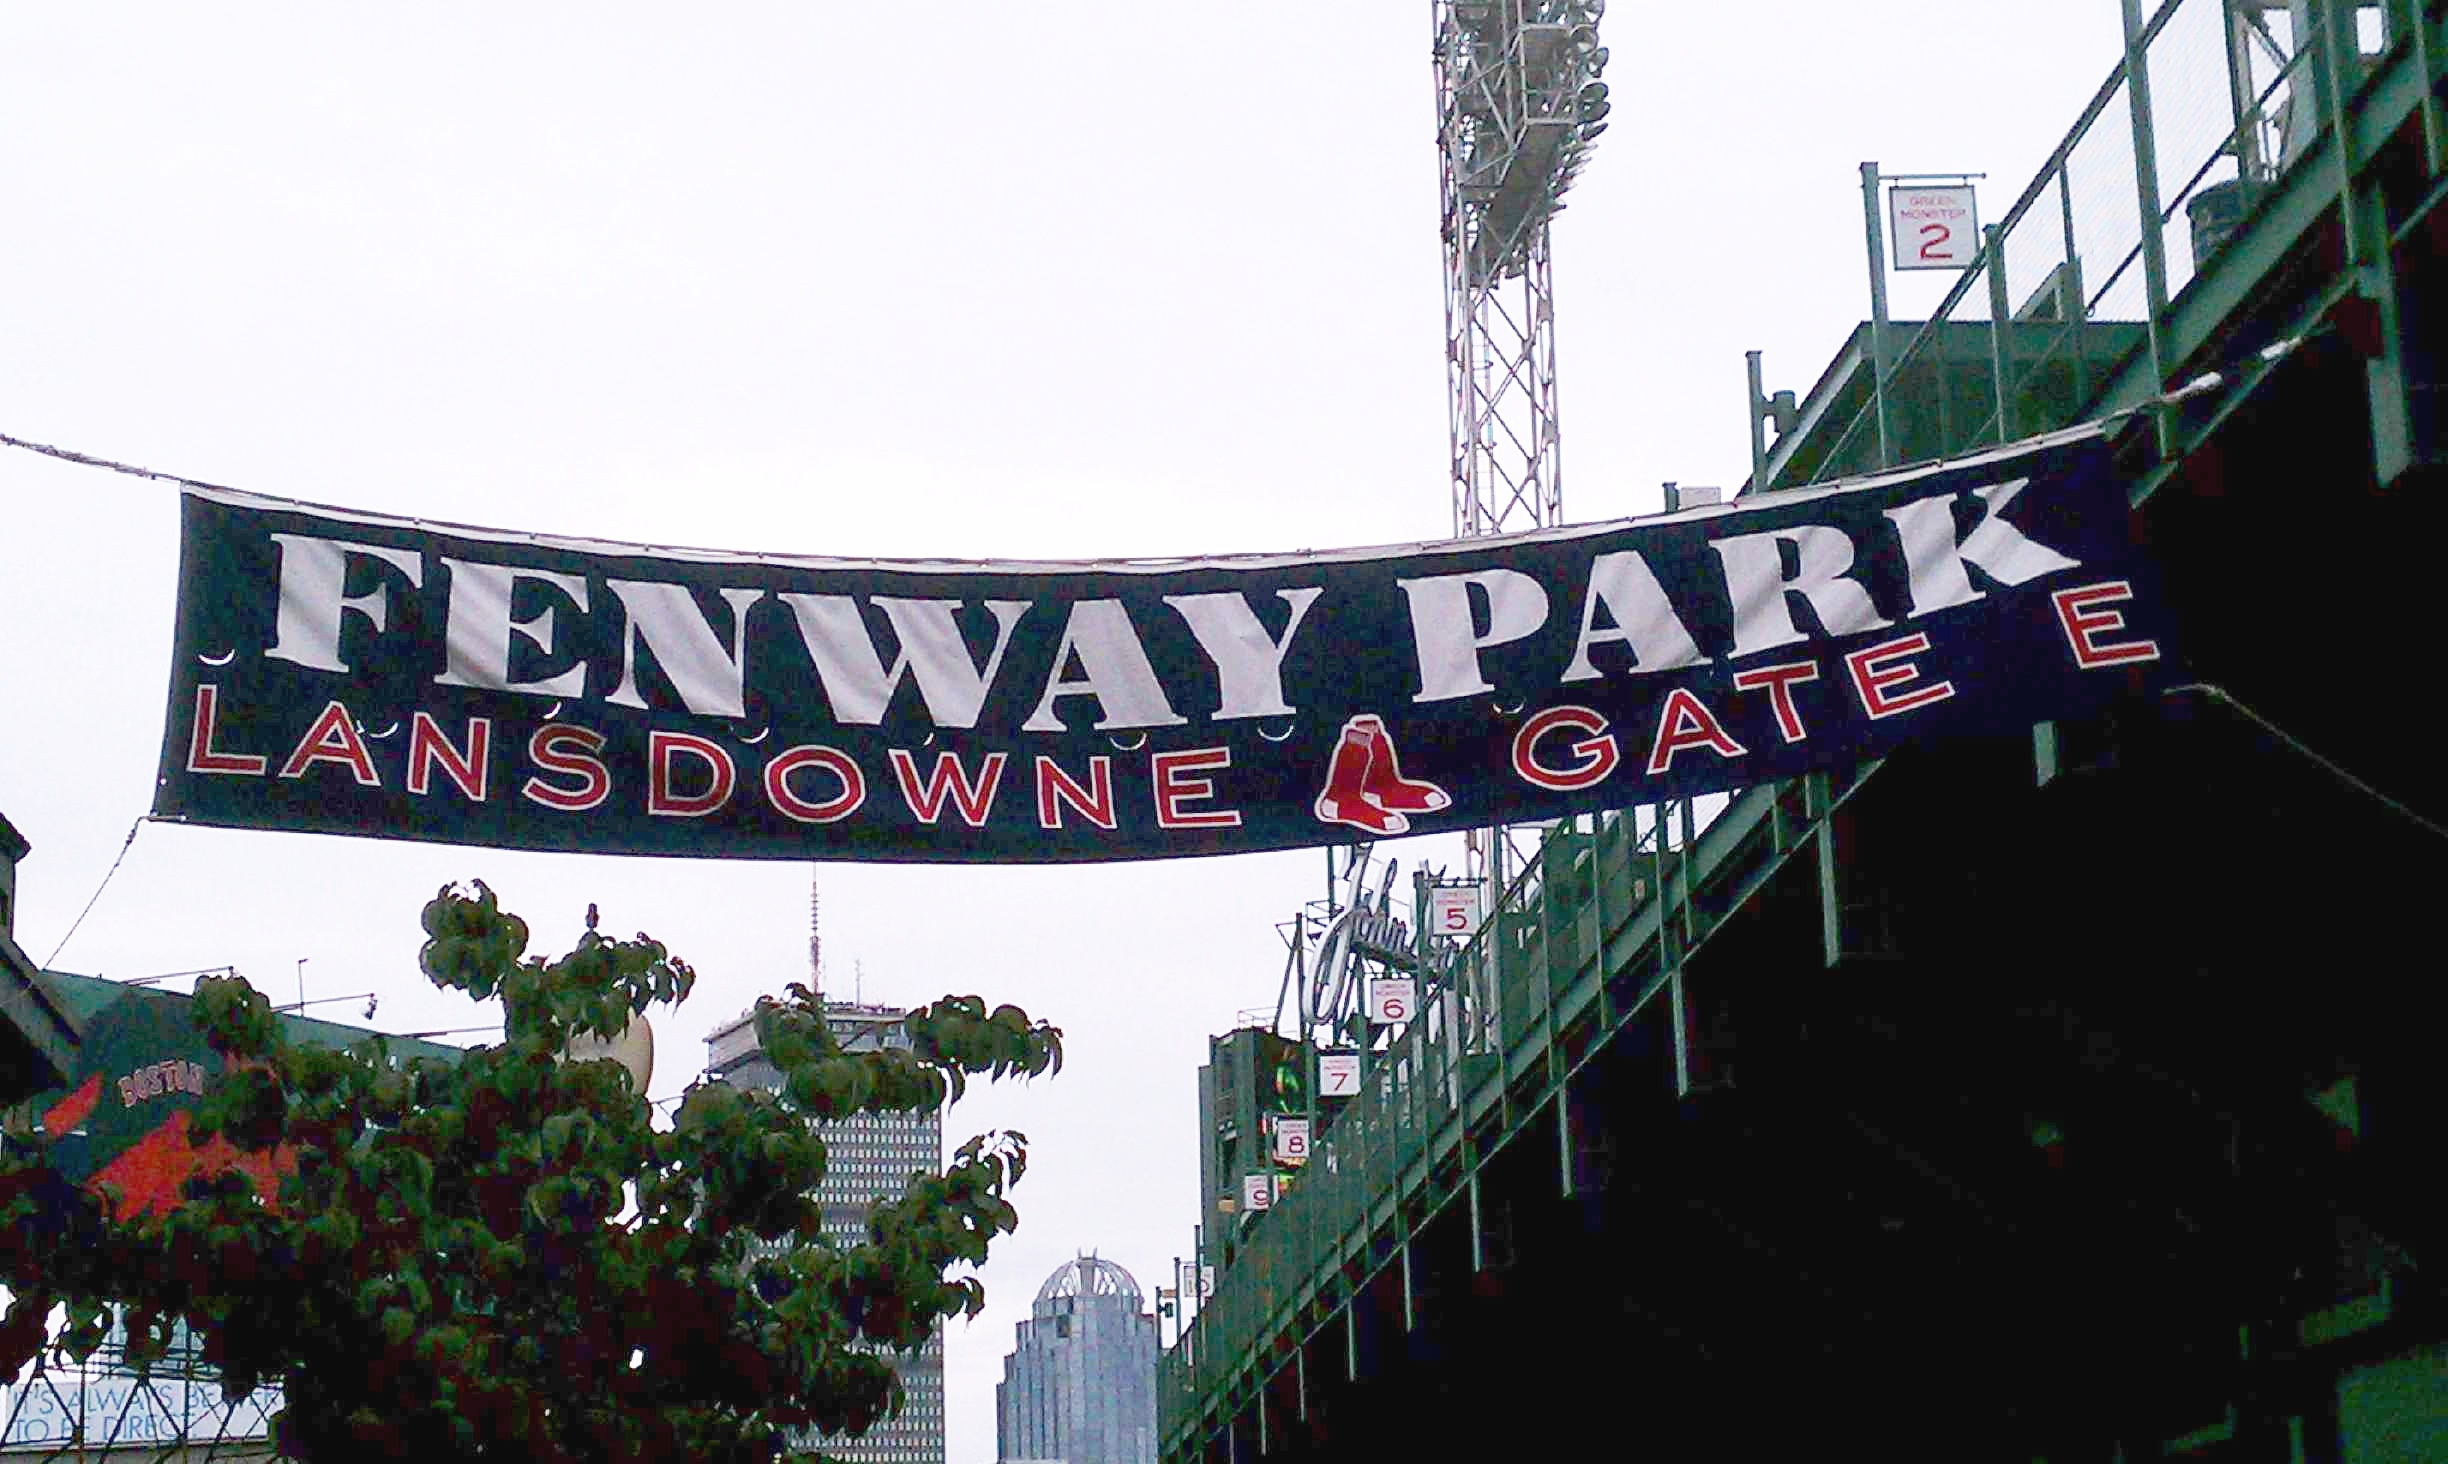 We didn't have time for a game, but we made sure to go and visit Fenway.